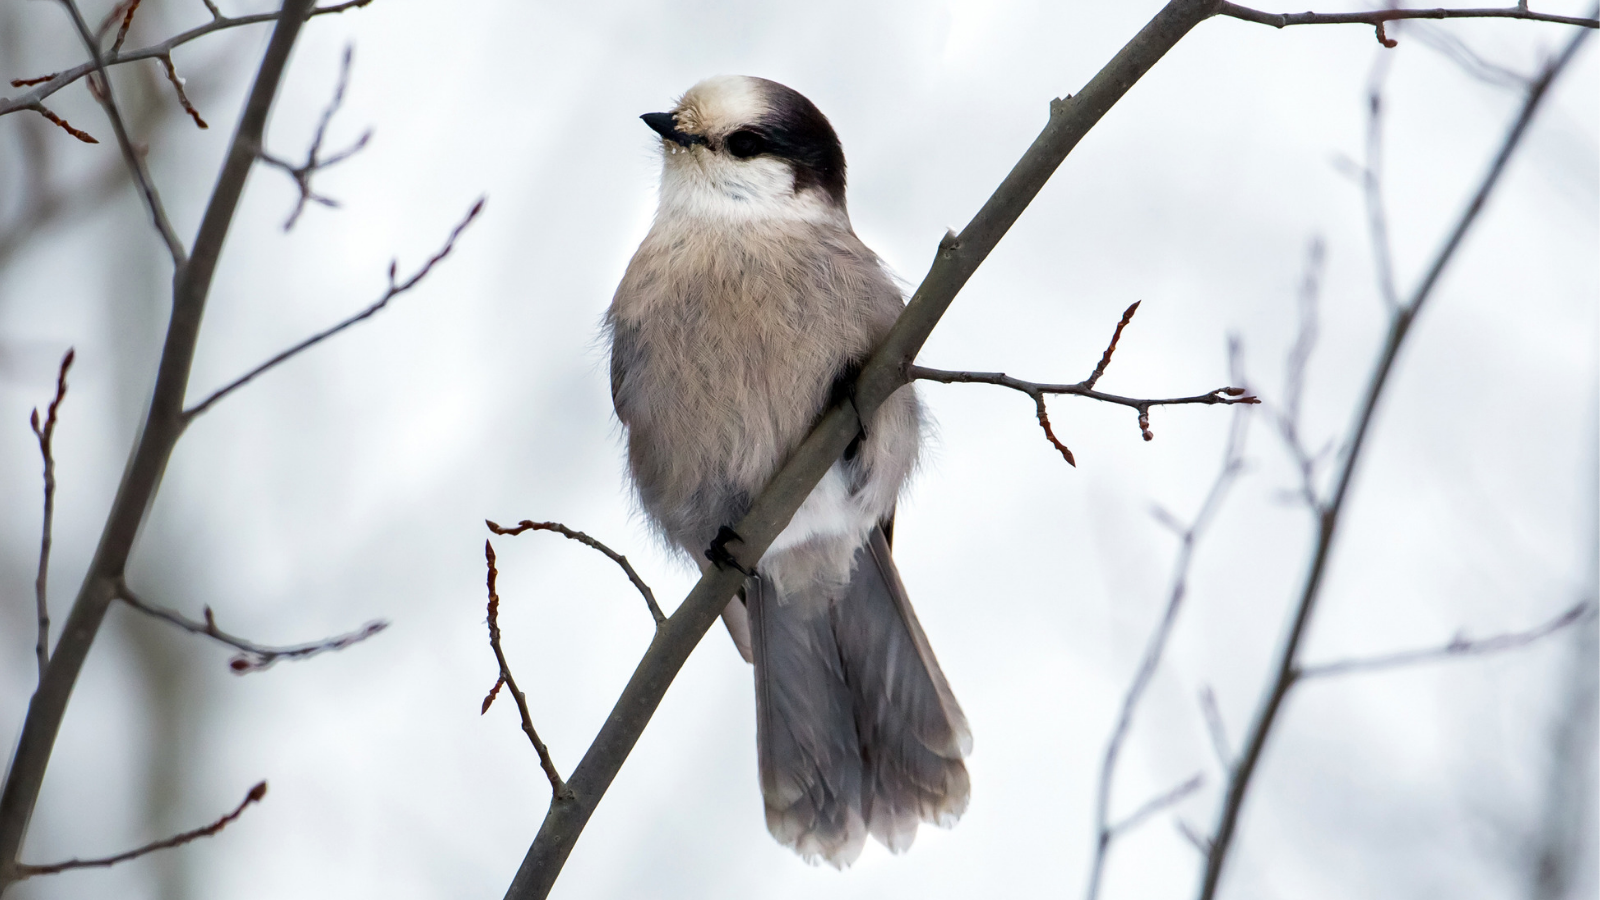 Canada Jay by Mick Thompson